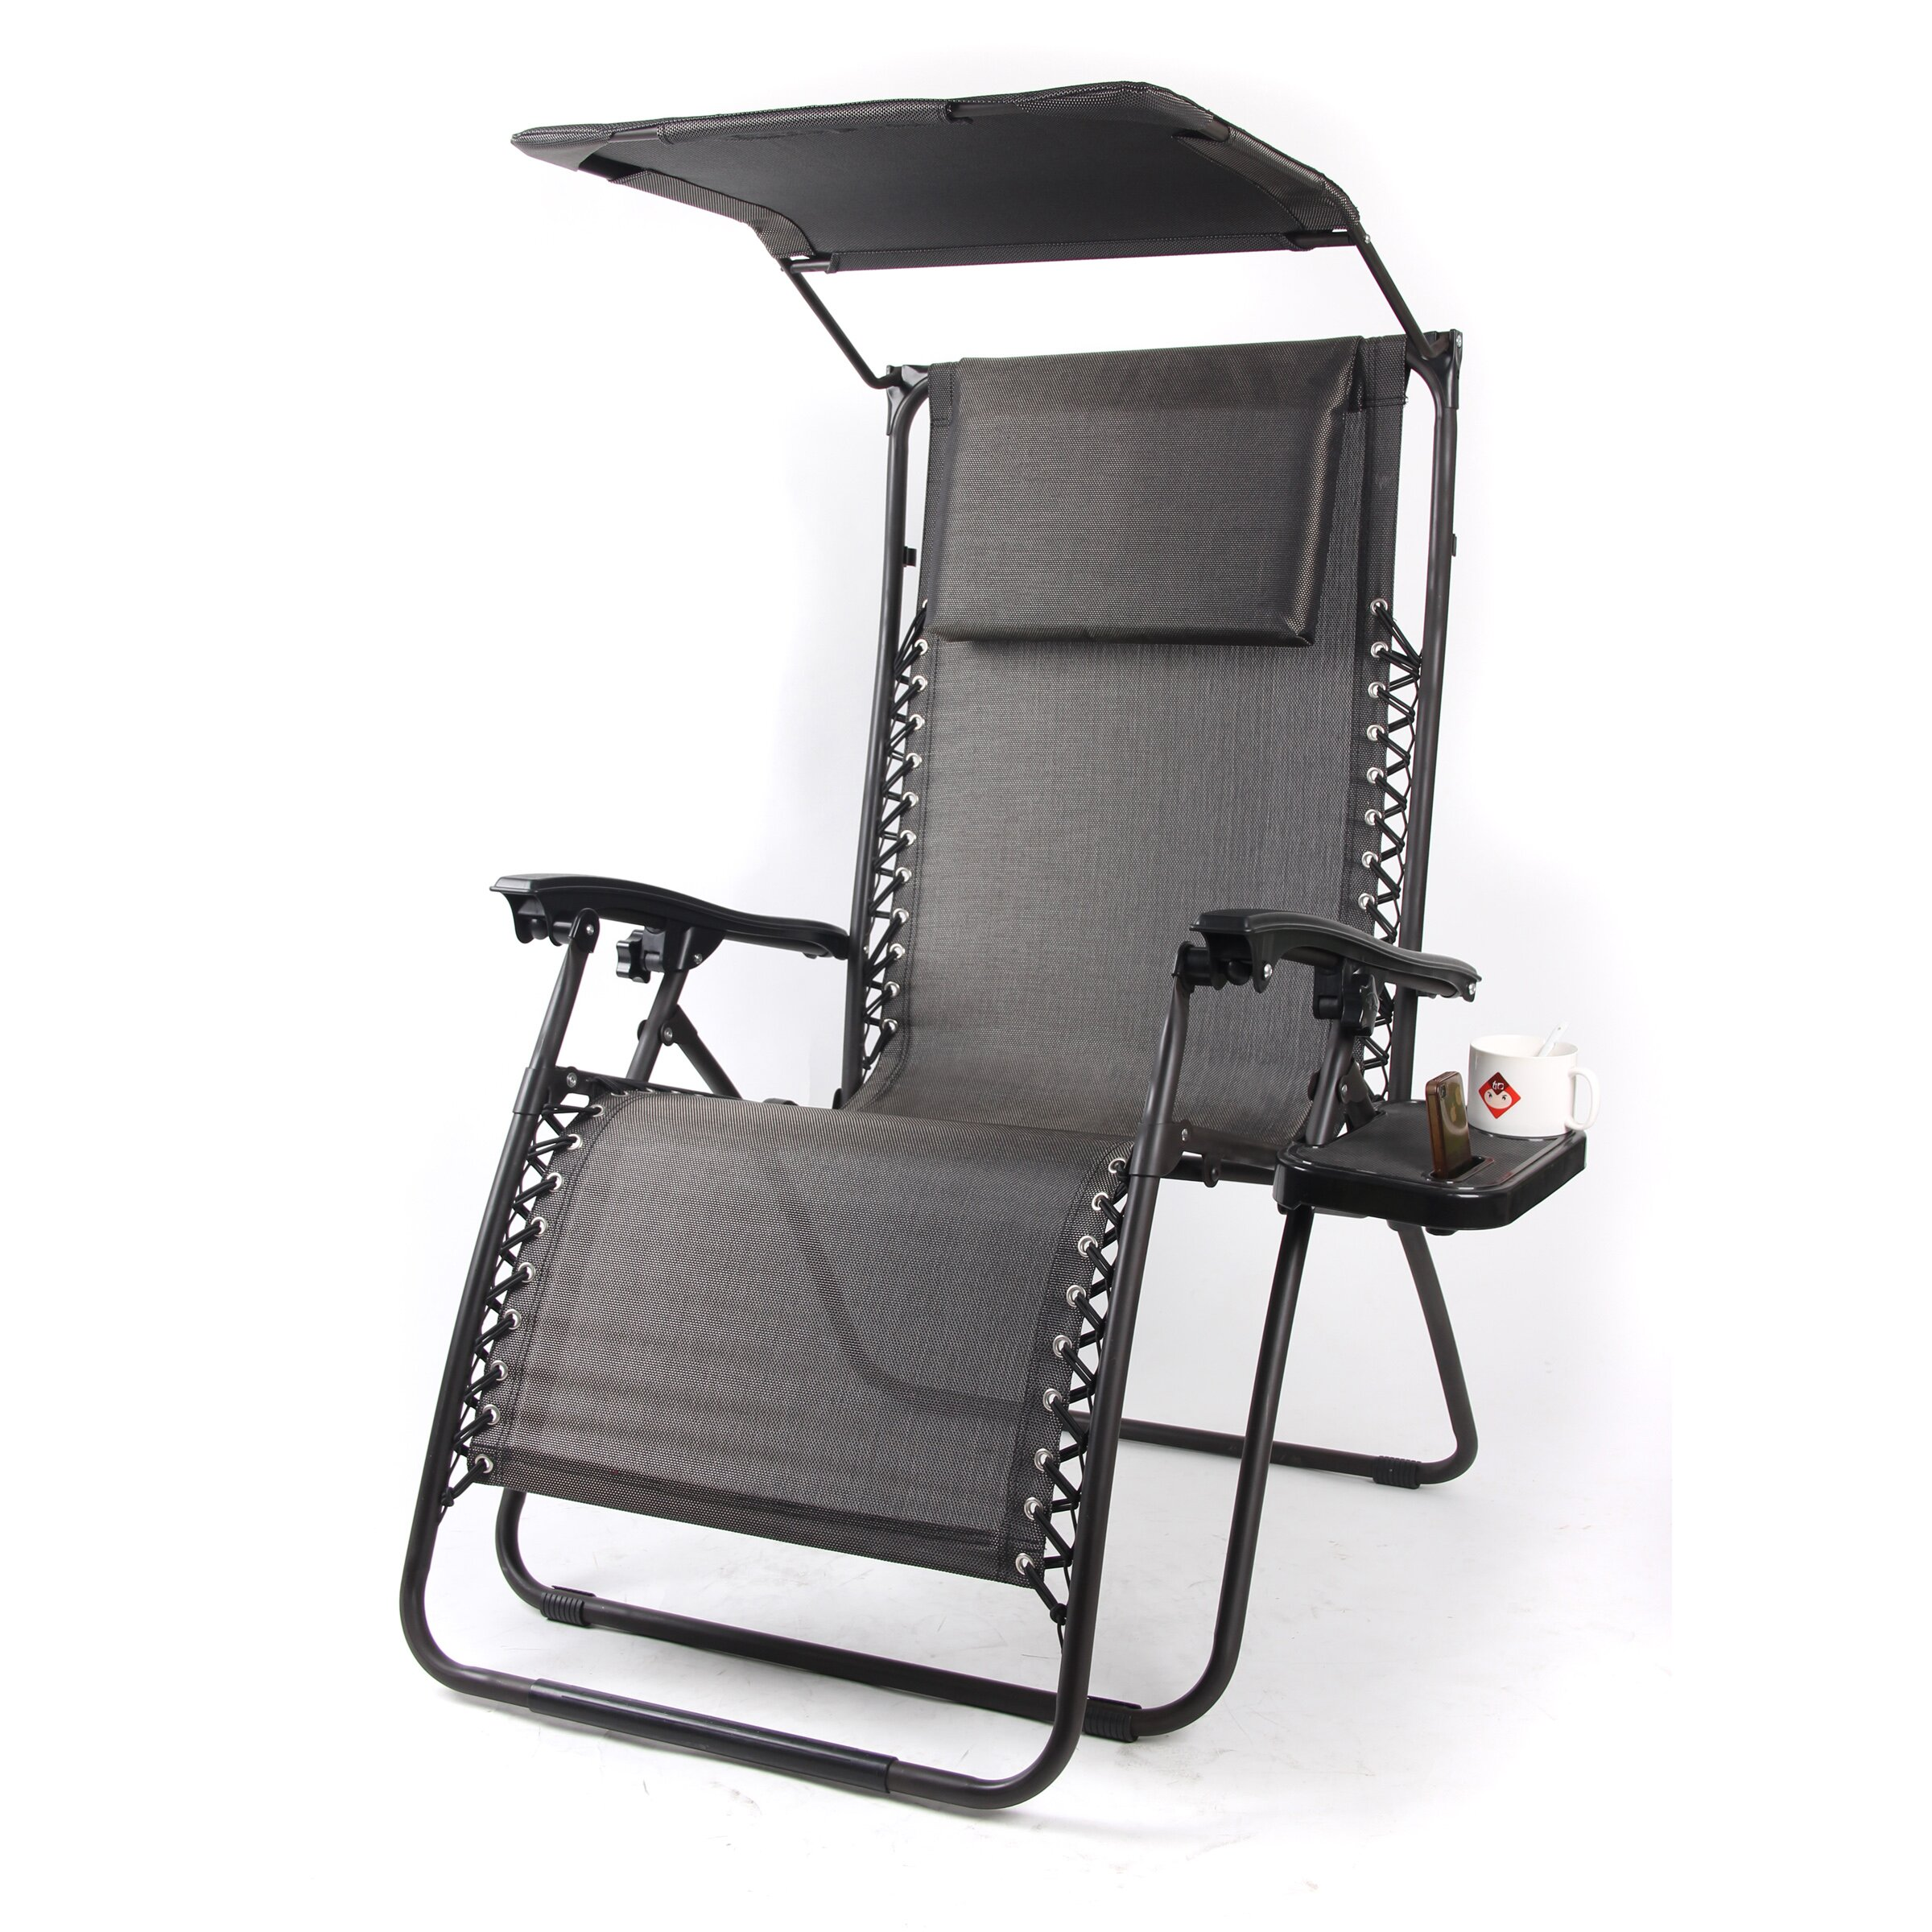 Gold sparrow pacific black xl zero gravity chair reviews for Chair zero review